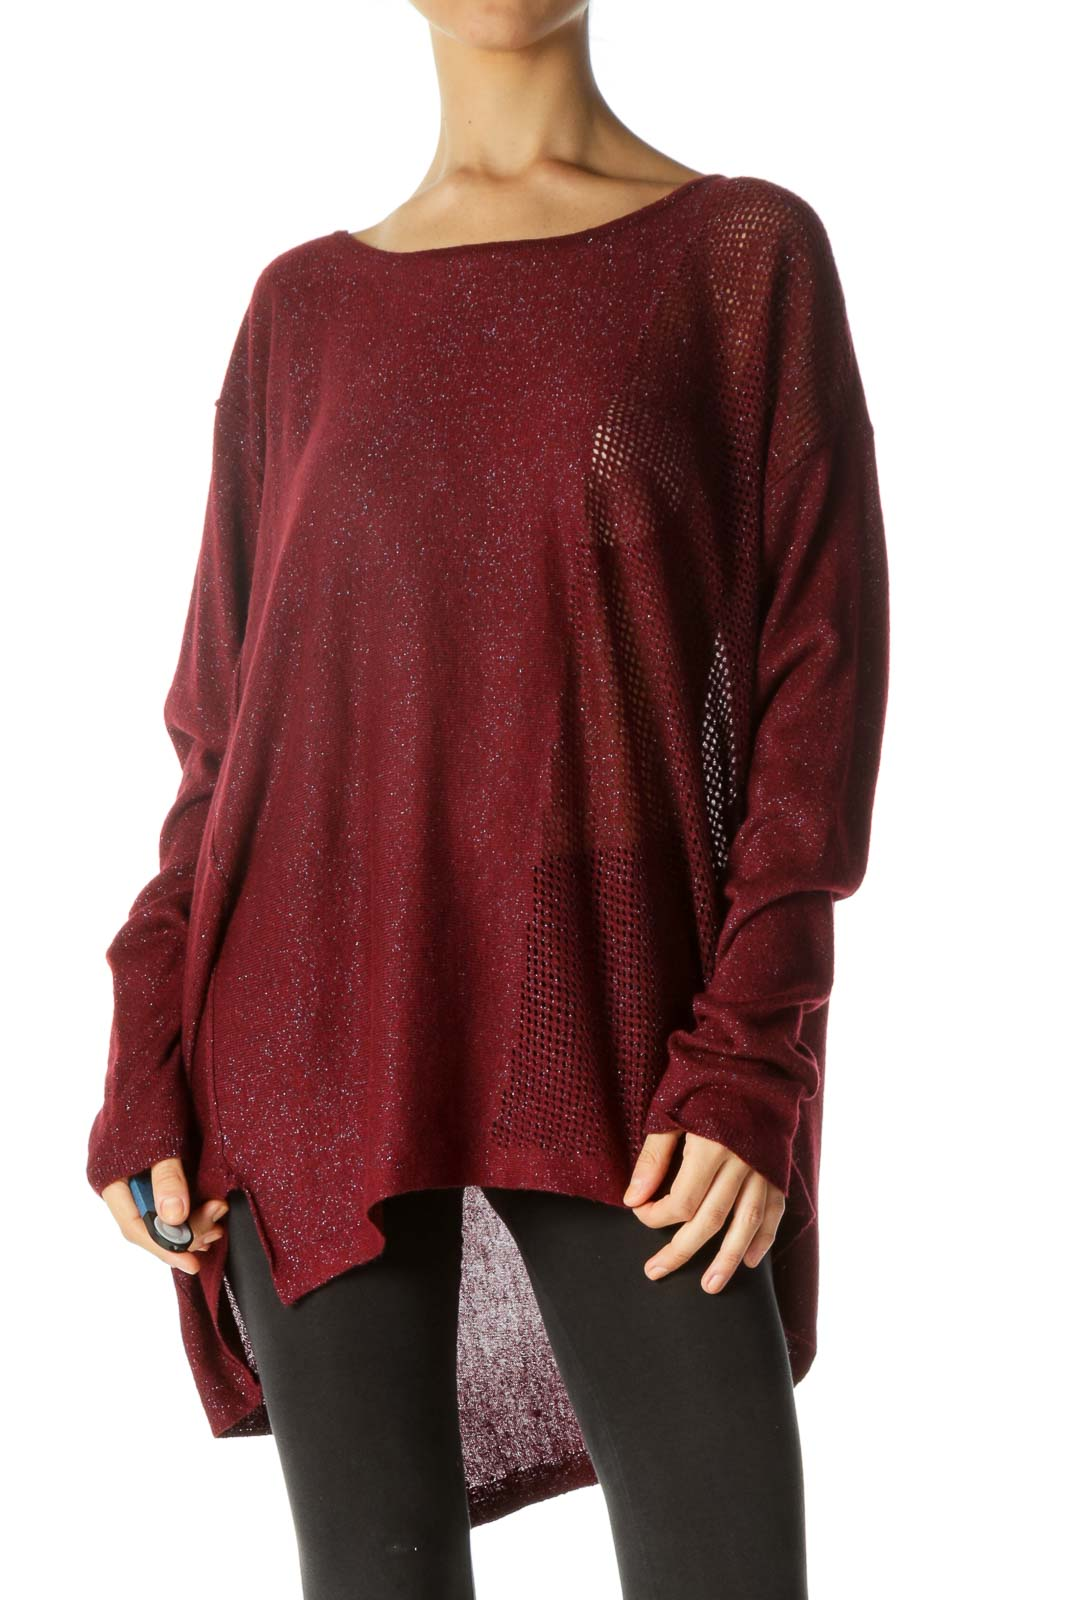 Burgundy Black Silver Round Neck Soft See-Through Knit Top